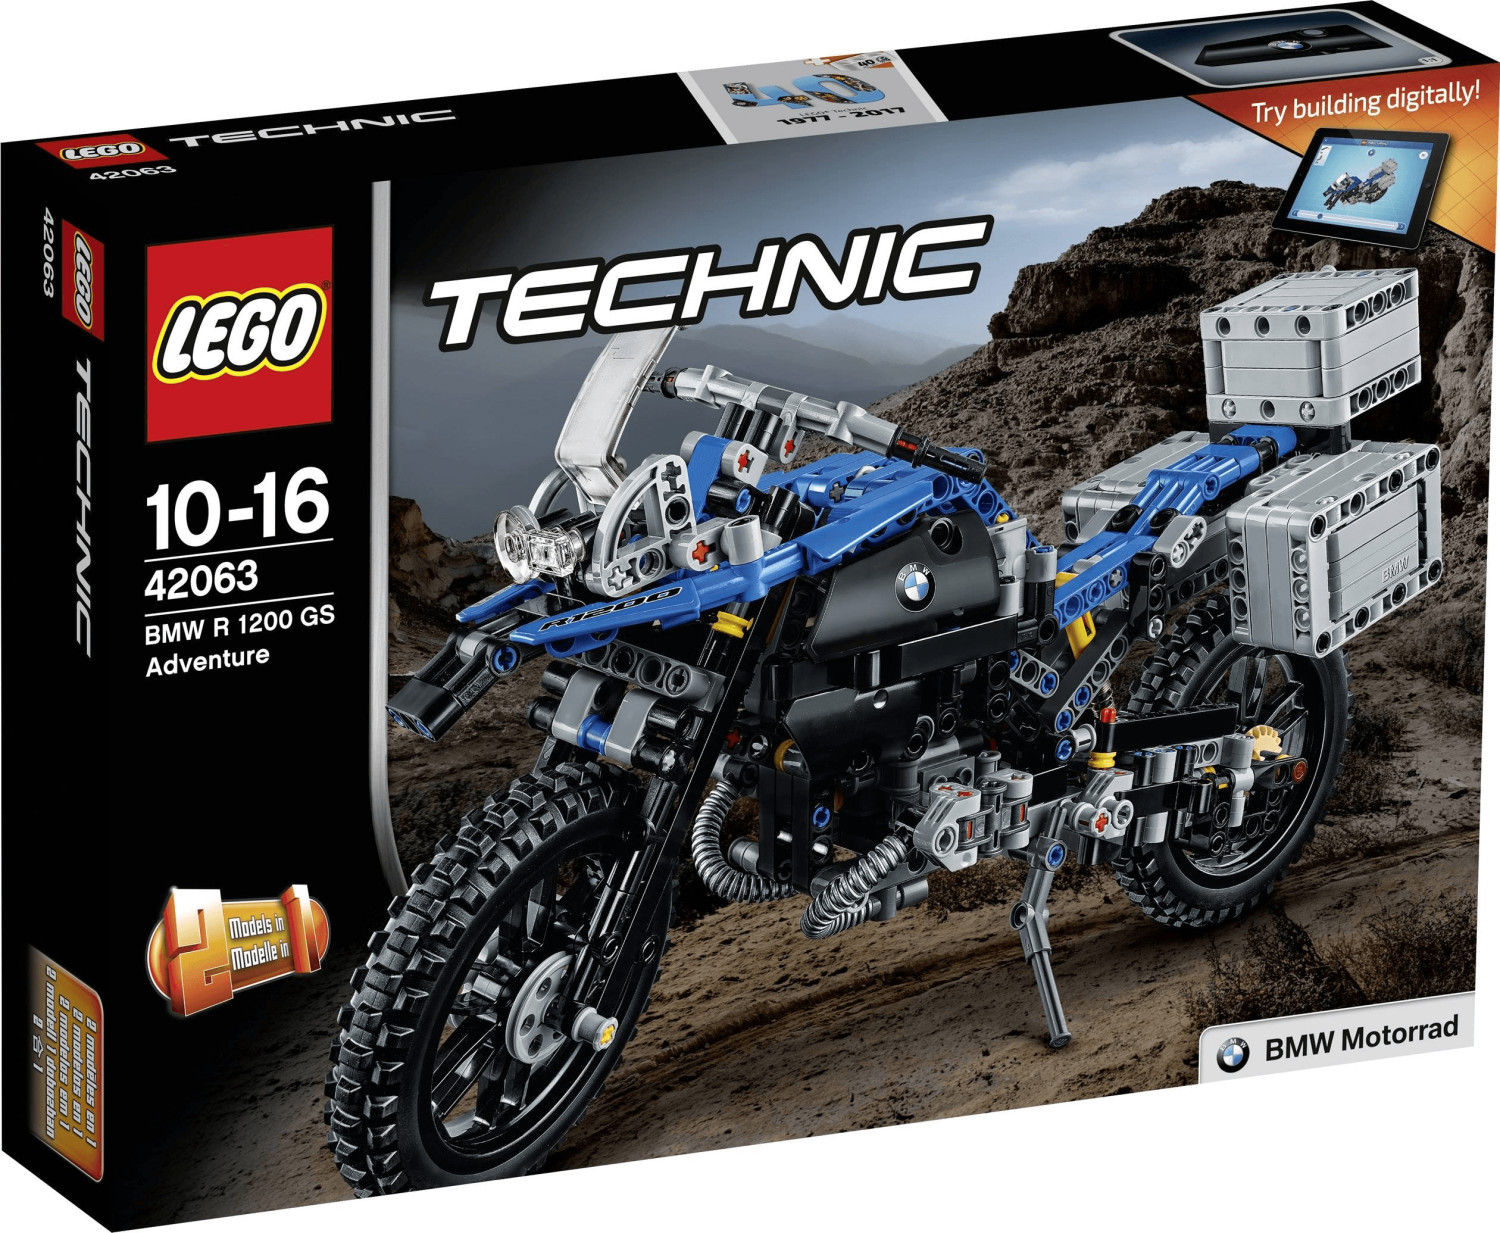 LEGO Technic - BMW R 1200 GS Adventure (42063)